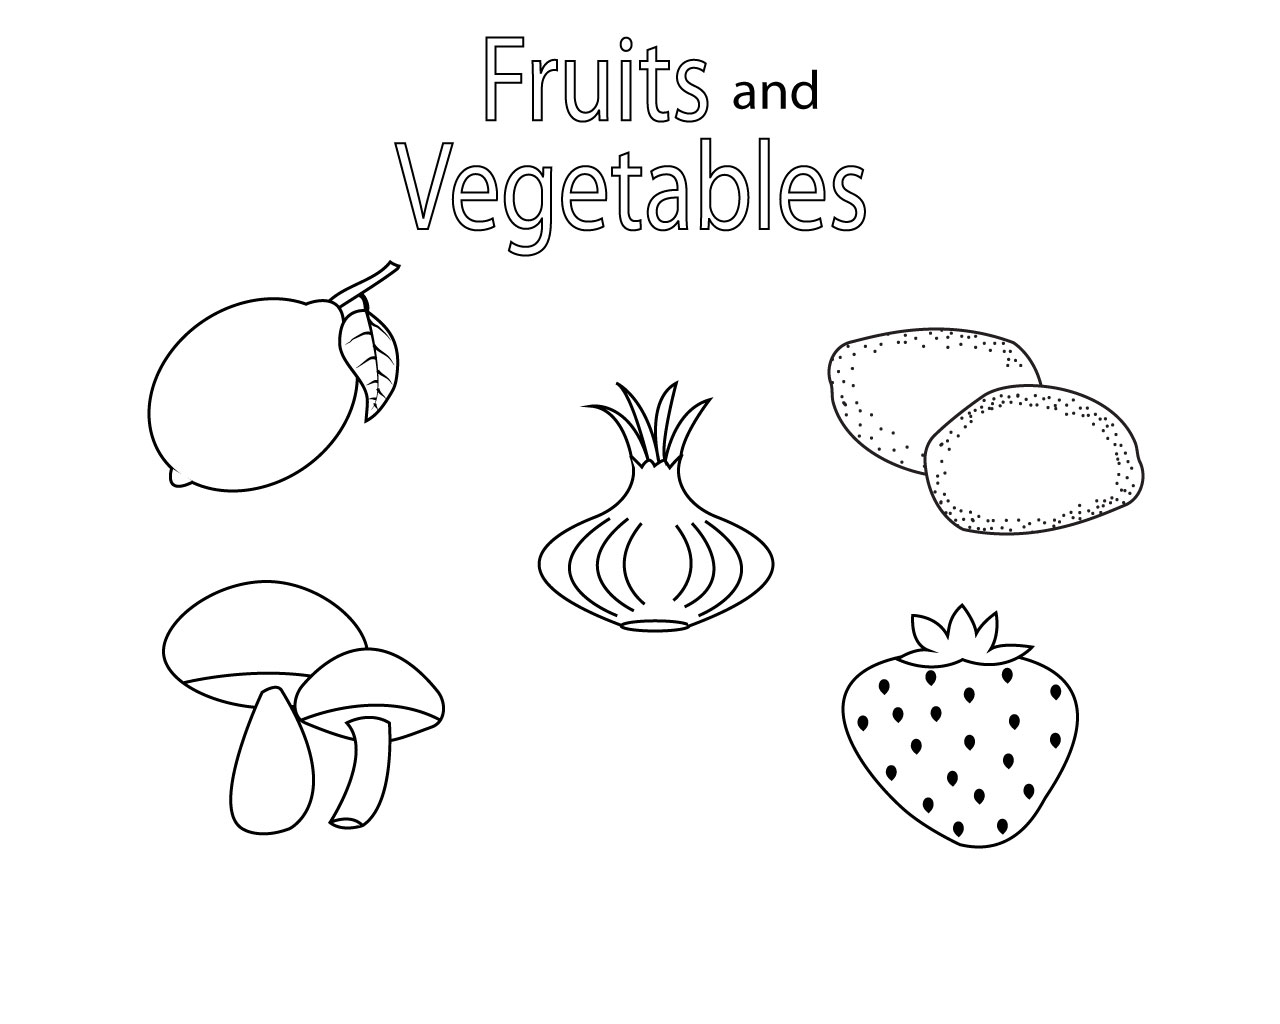 coloring fruits and vegetables images fruits and vegetables drawing at getdrawings free download fruits images and coloring vegetables